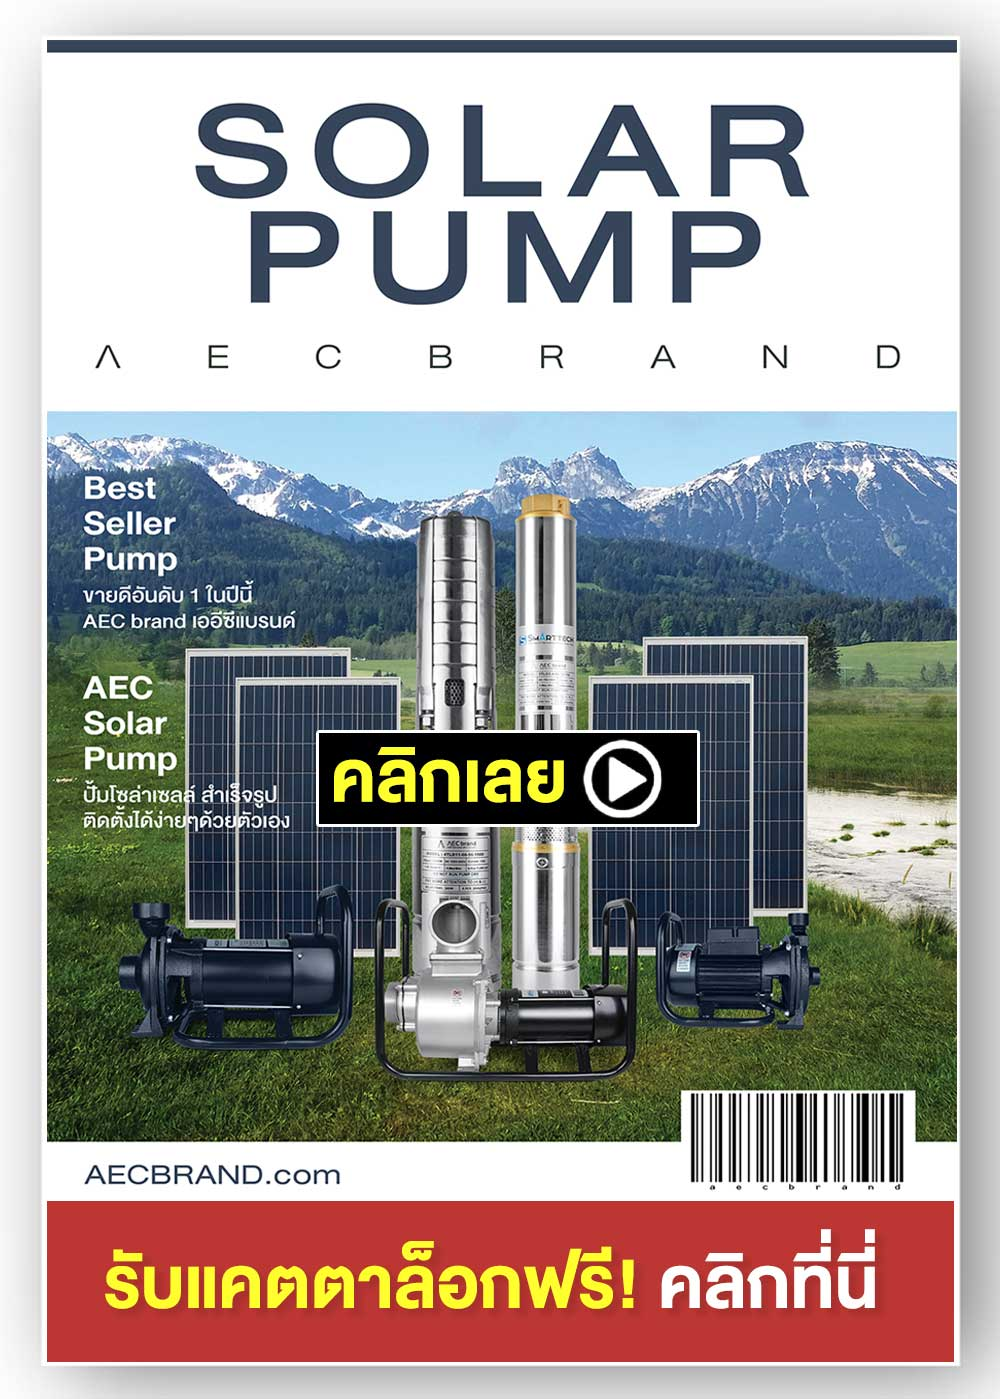 Download-Catalog-Solarcell-Pump